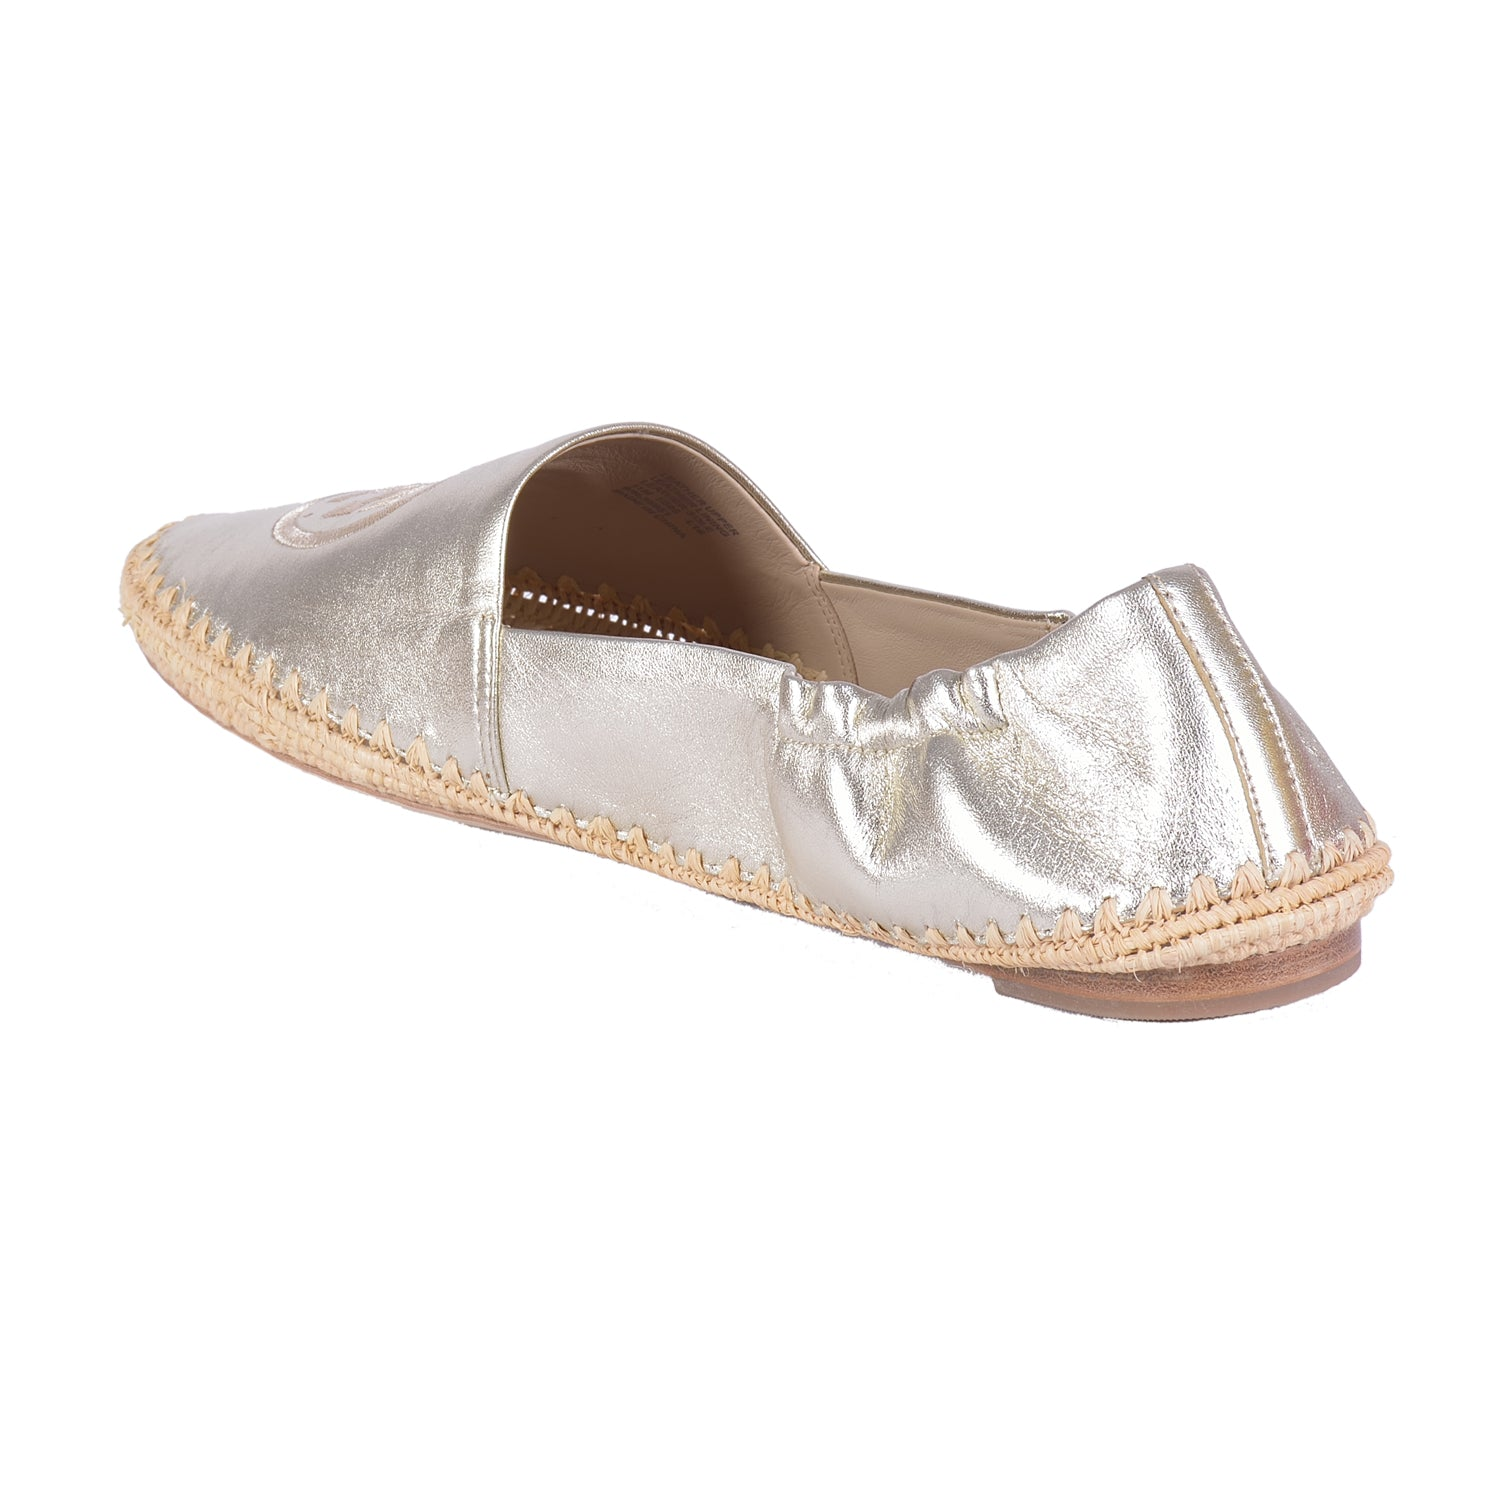 TORY BURCH DARIEN GOLD LEATHER ESPADRILLE LOAFER